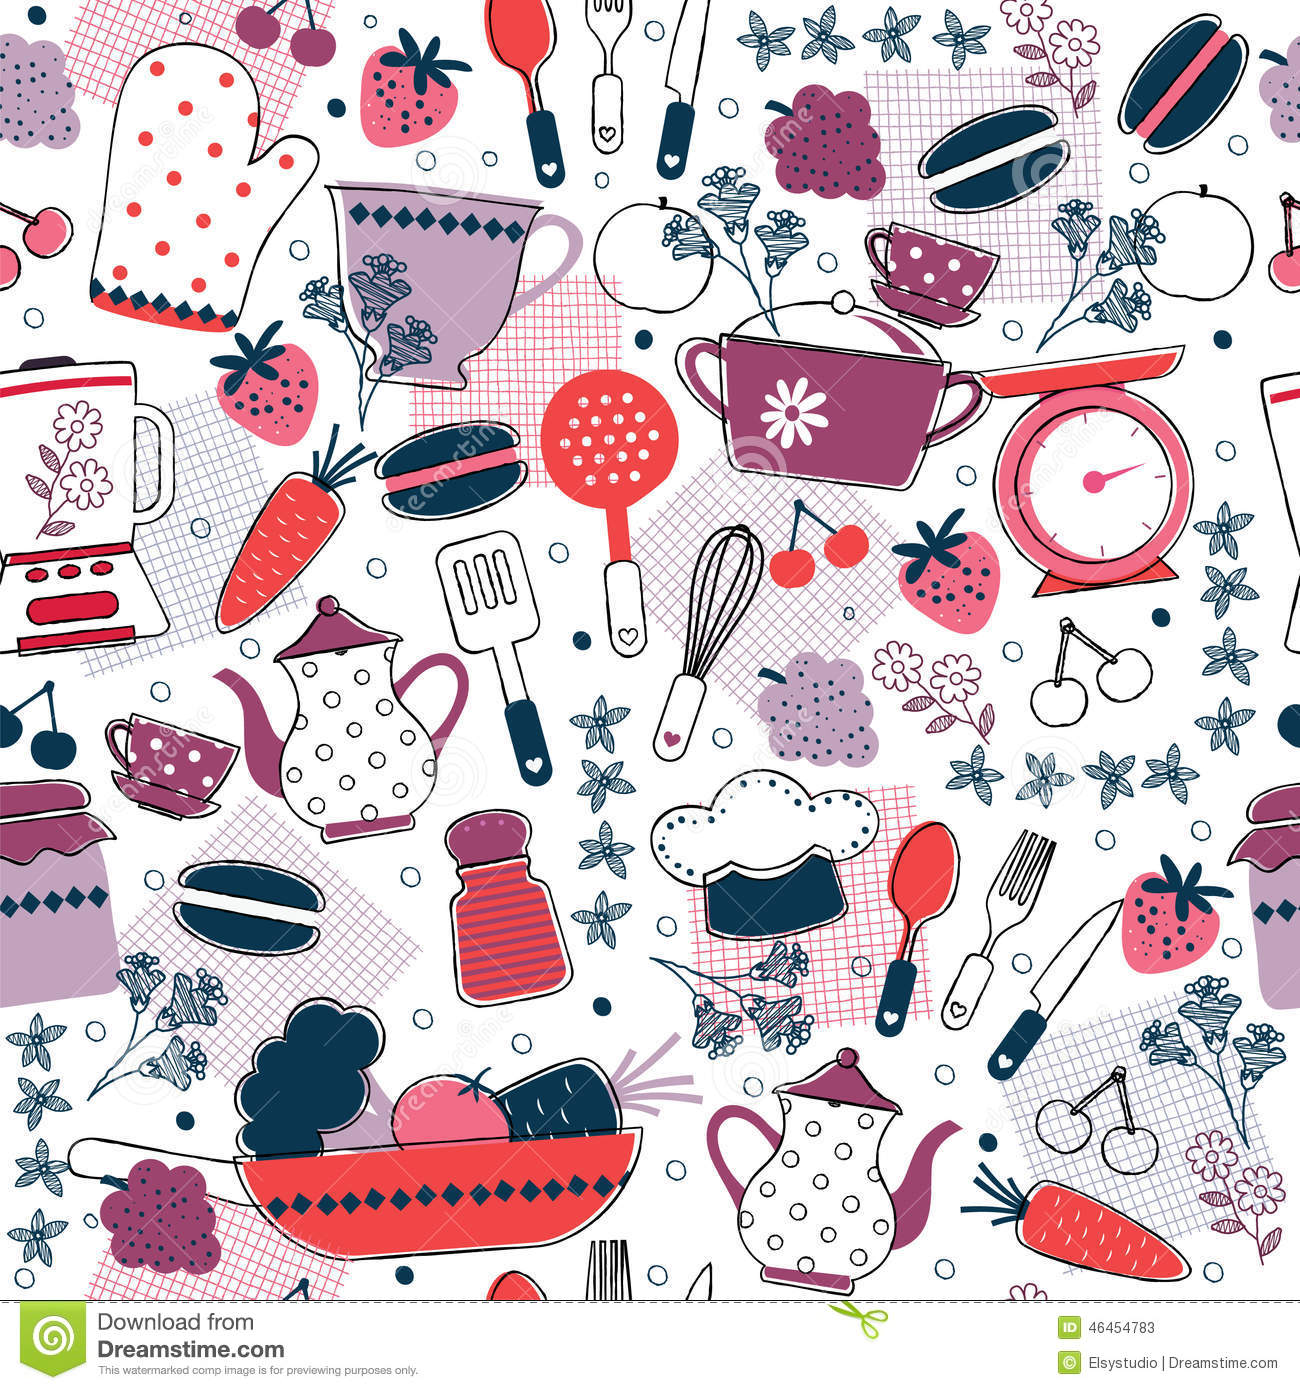 seamless kitchen wallpaper design vector file can be scaled to any sizes losing resolution 46454783